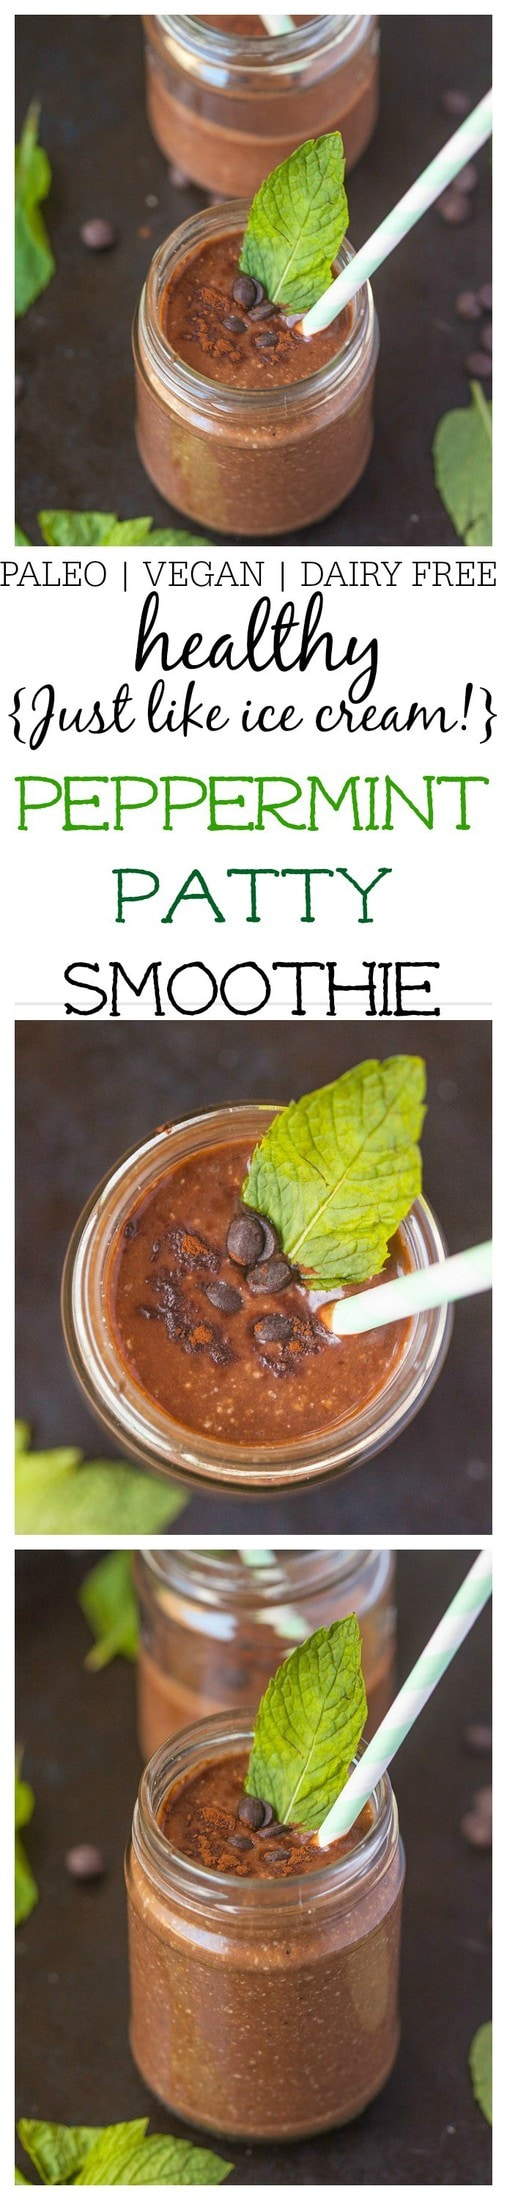 Healthy Peppermint Patty Smoothie- A quick and easy smoothie recipe which tastes like a peppermint patty but filled with superfood! Naturally vegan, dairy free, gluten free, sugar free and paleo- Creamy, thick and just like ice cream! @thebigmansworld- thebigmansworld.com